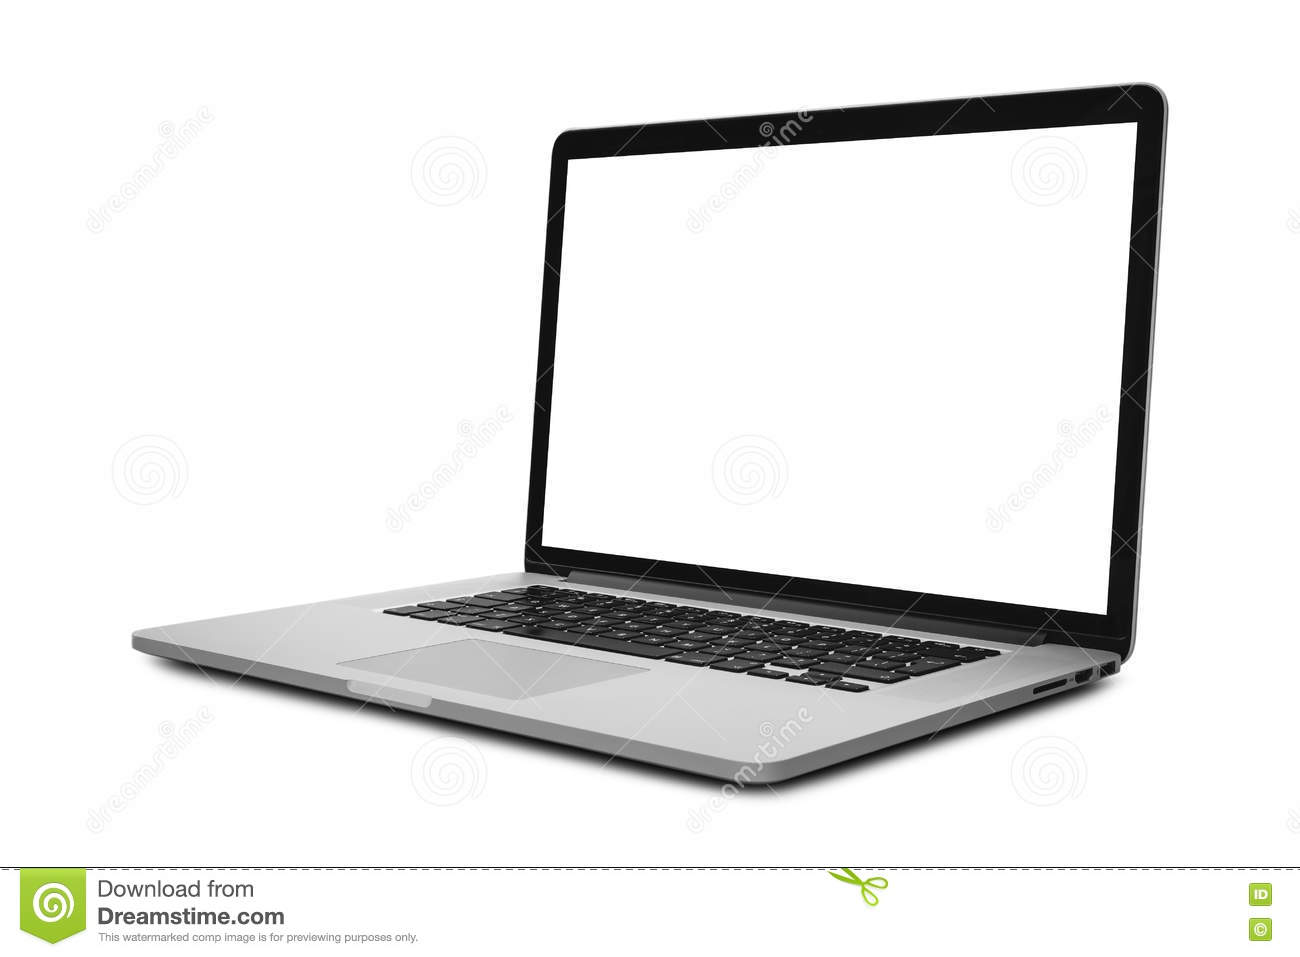 Laptop with blank screen in angled position isolated on white background